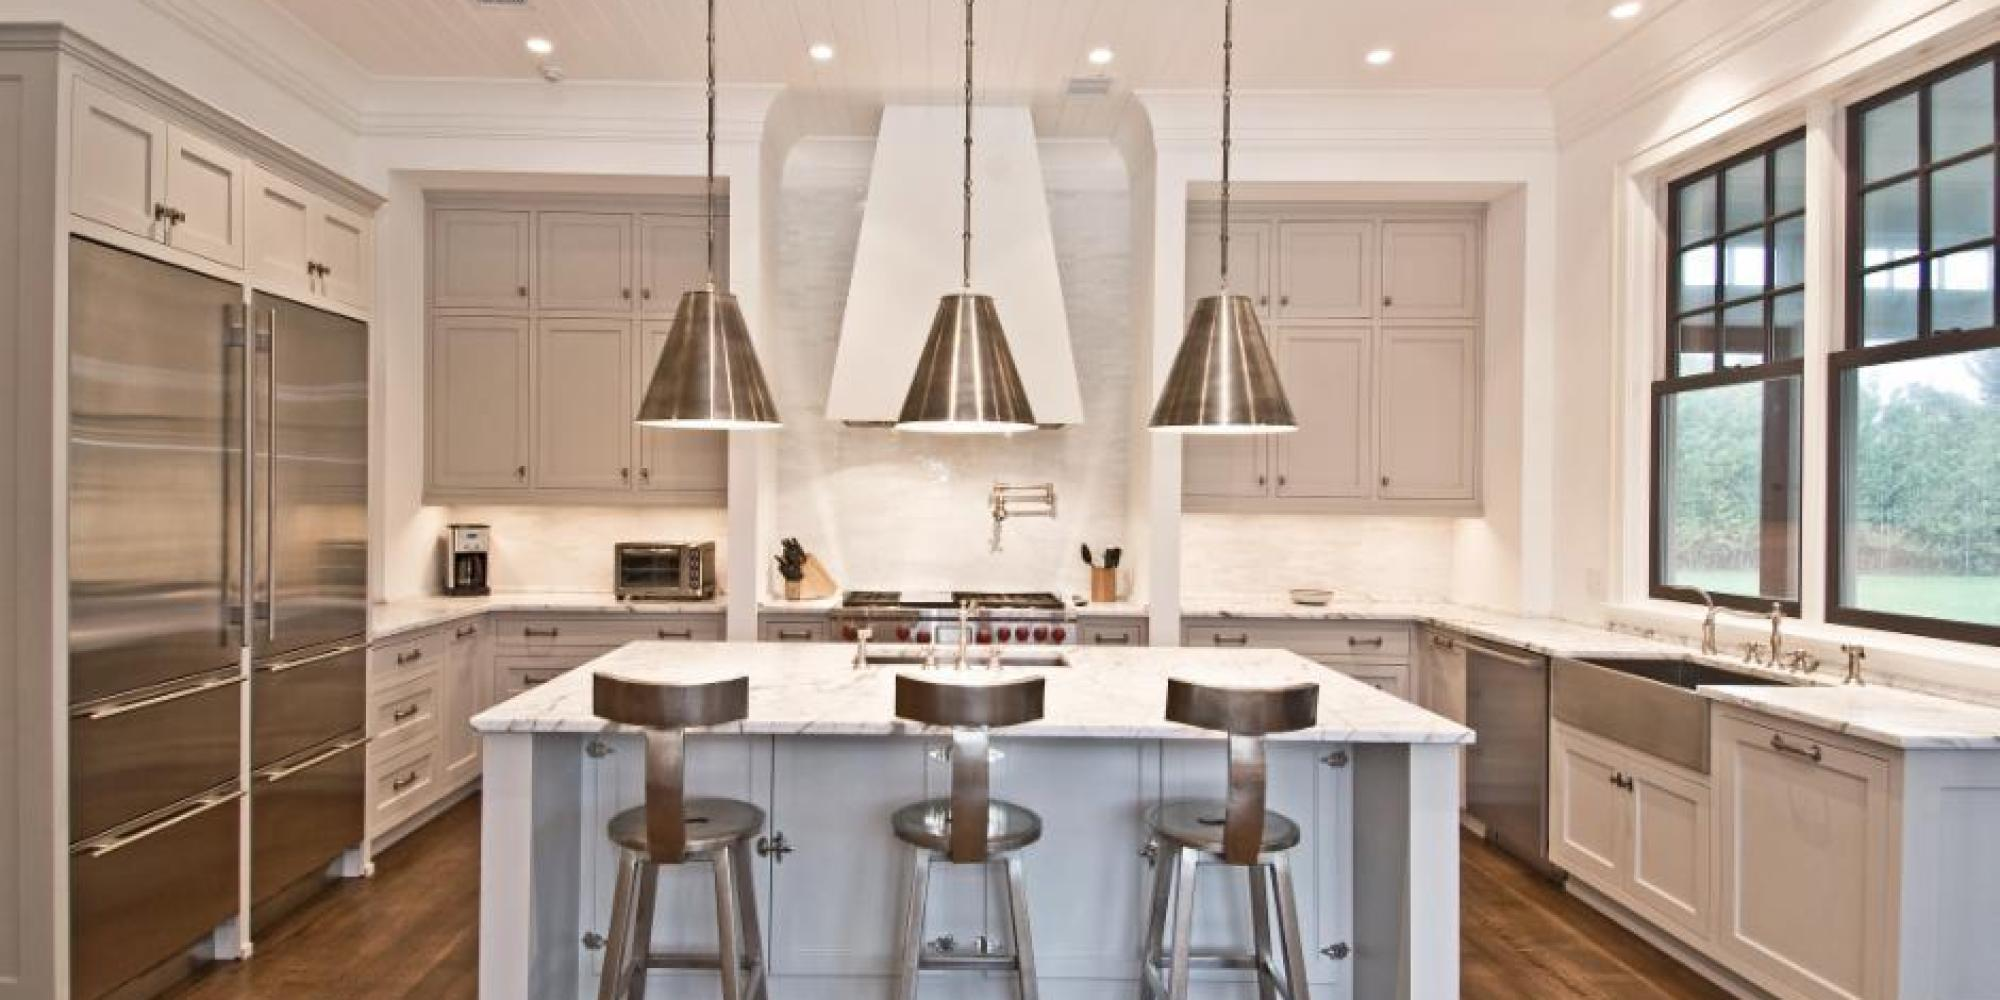 The Best Paint Colors For Every Type Of Kitchen HuffPost - Kitchen wall color ideas with white cabinets